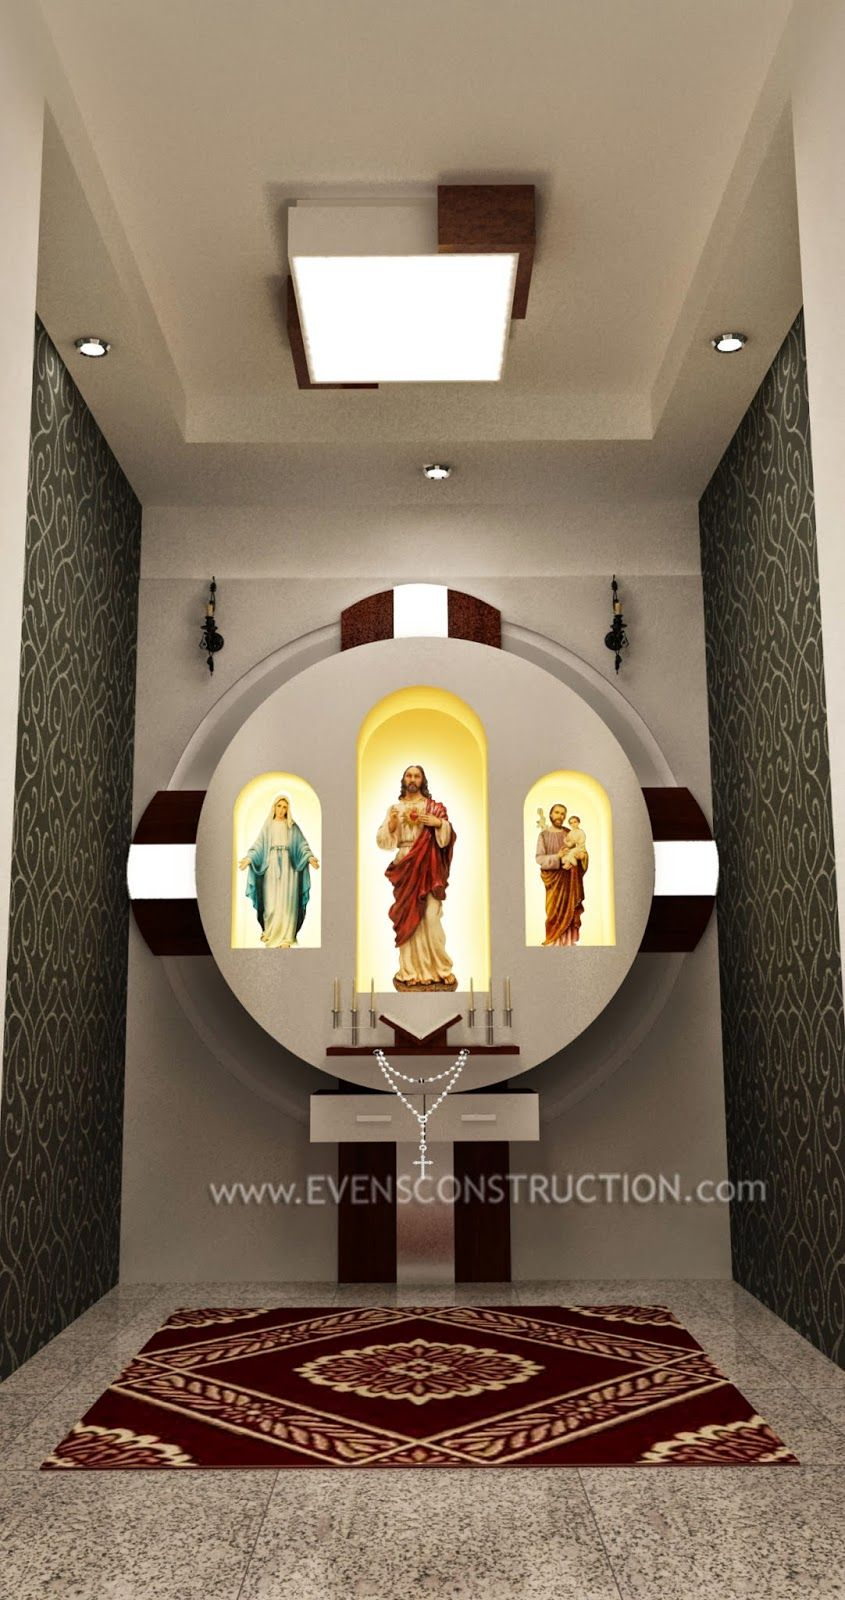 Prayer room ideas pictures remodel and decor -  Remodels And Decor Yabeen Home Home Prayer Room Ideas Download